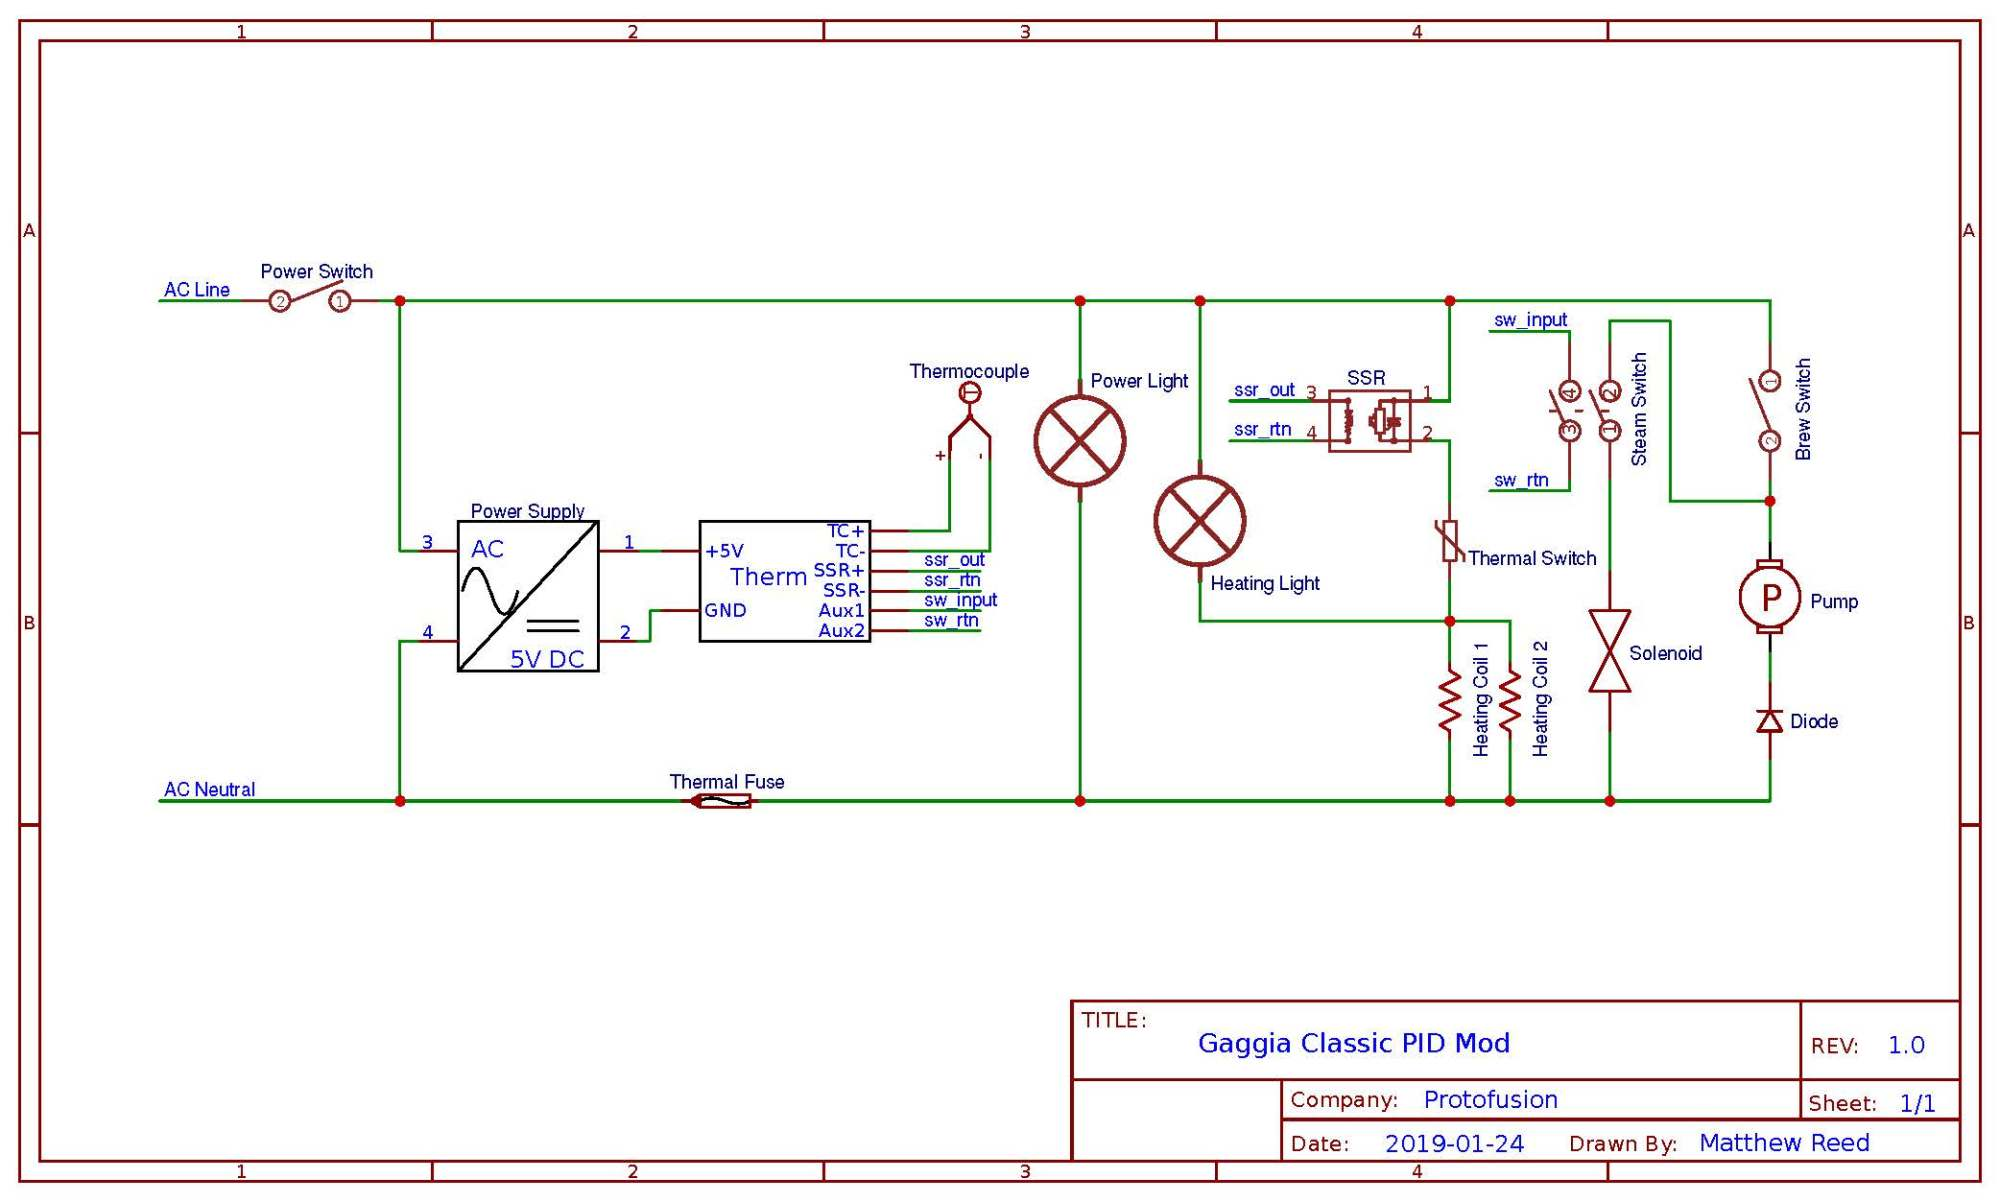 hight resolution of updated schematic showing modification details